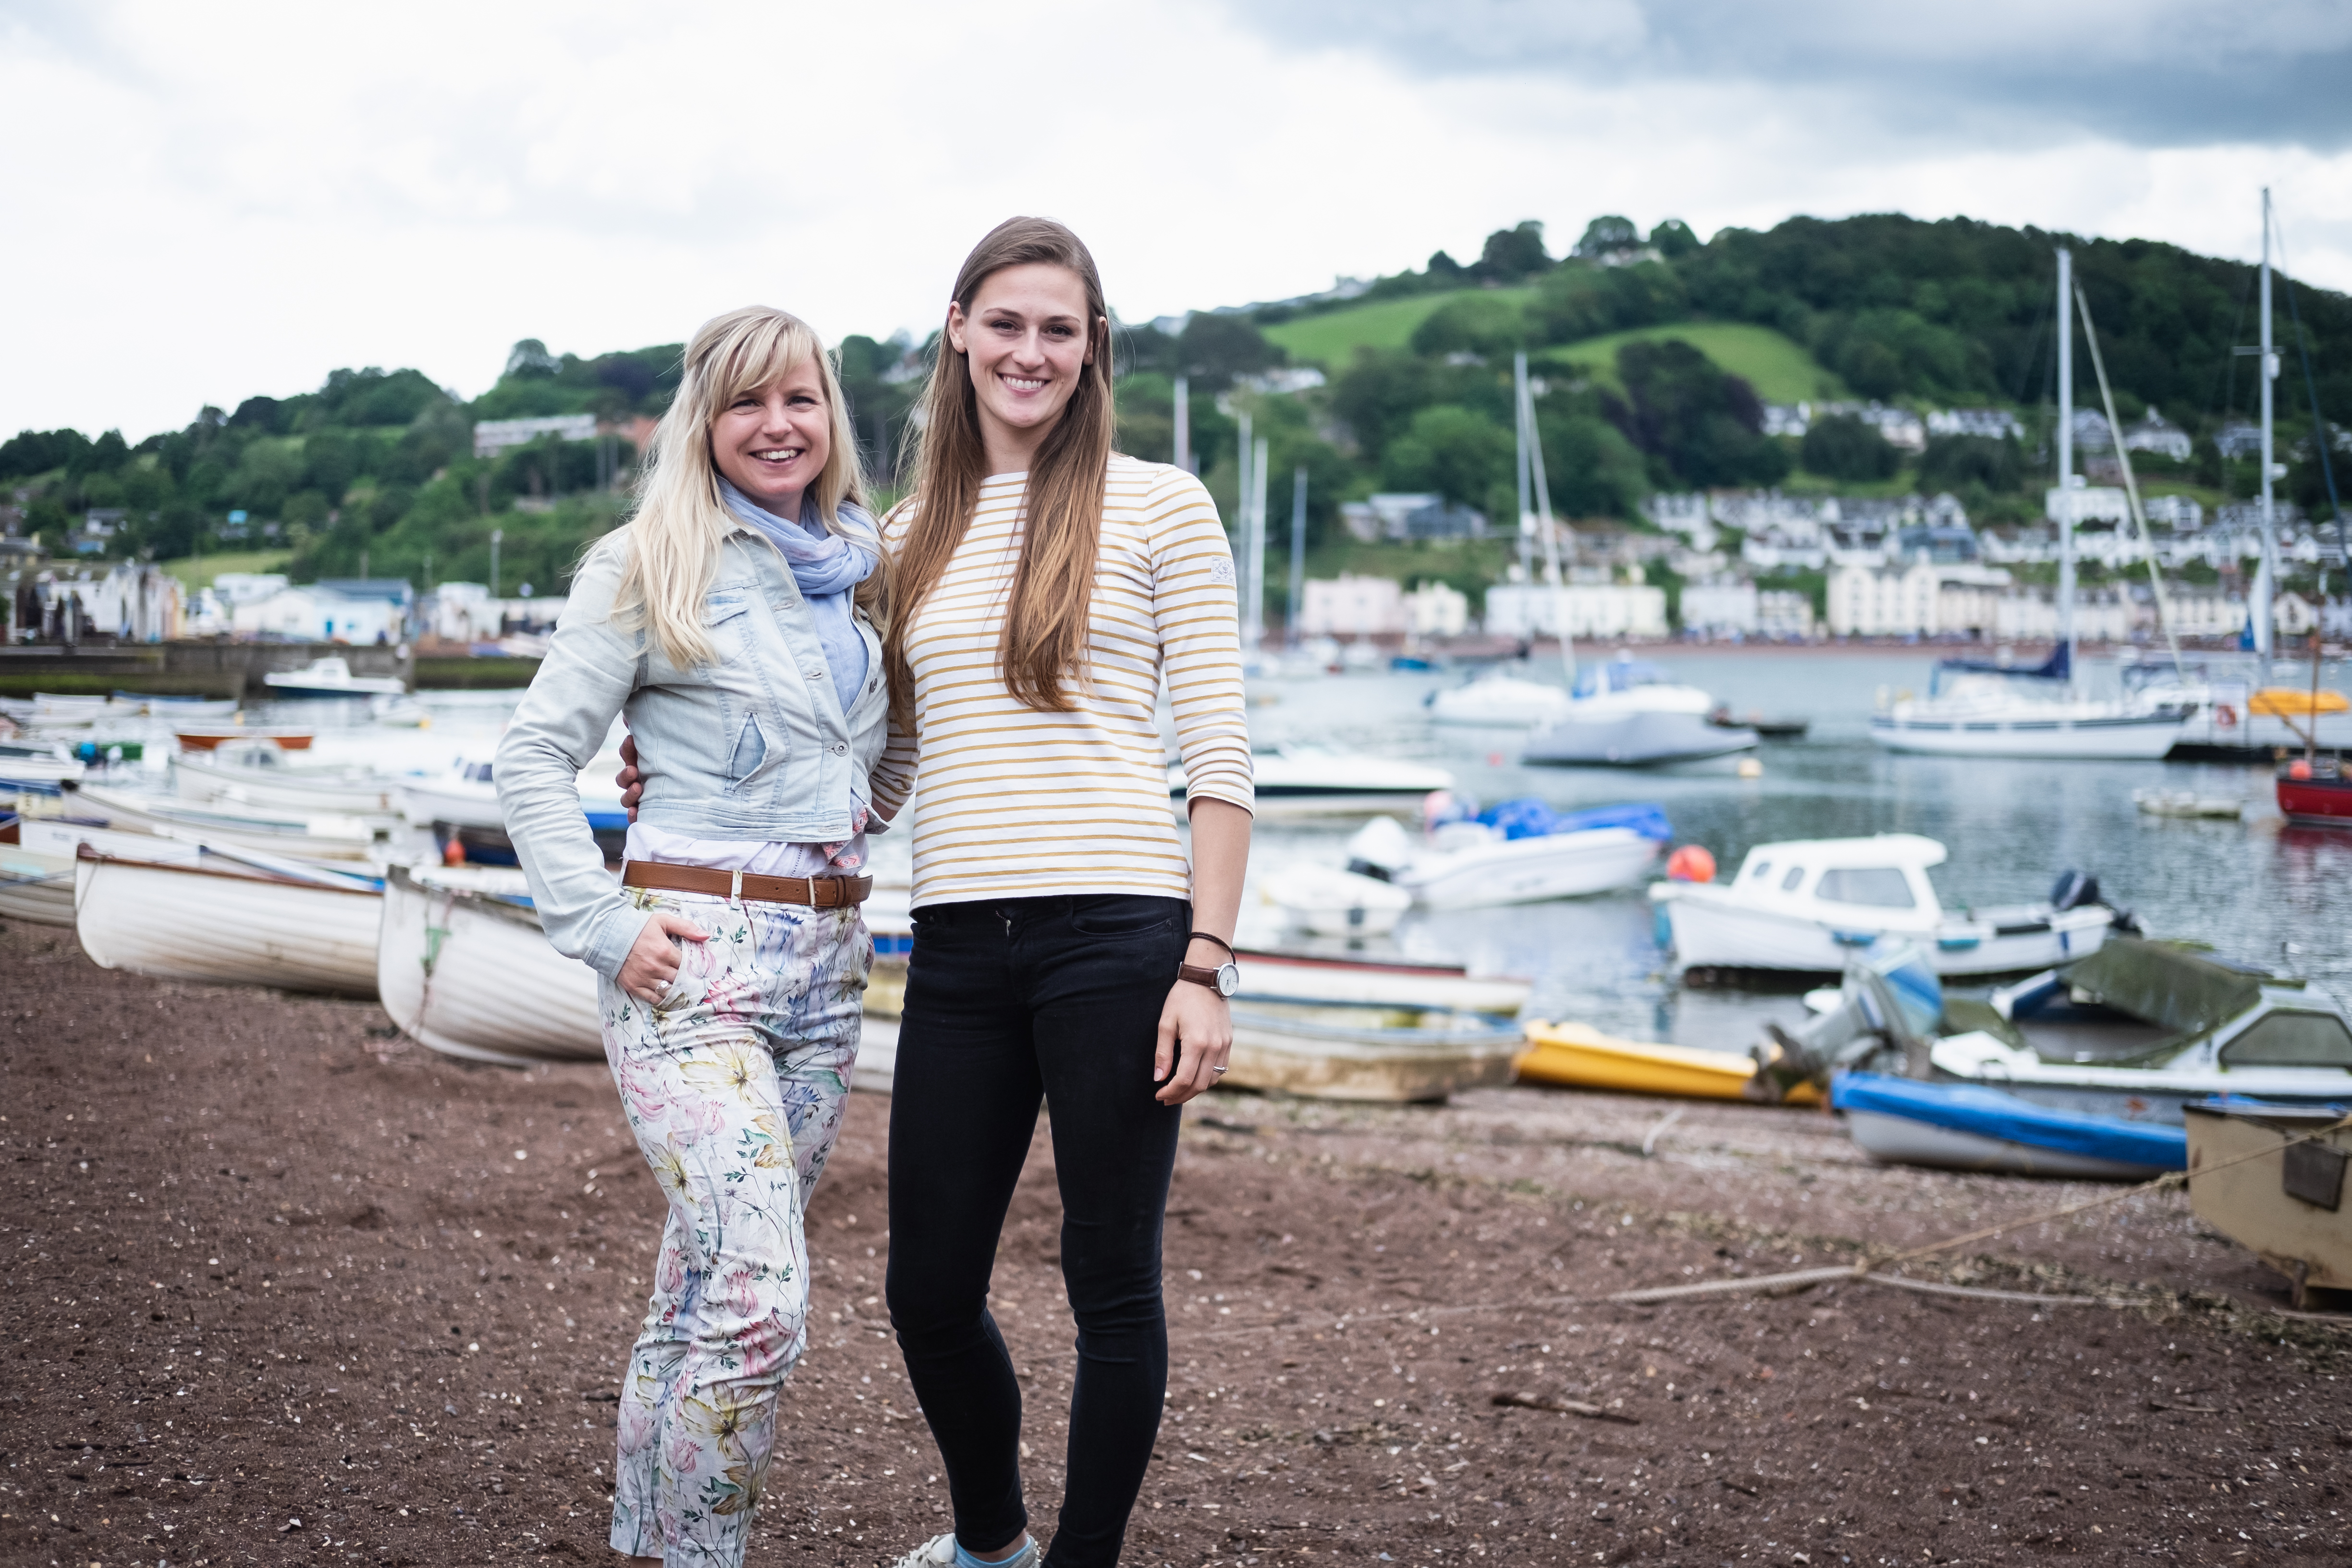 Laura Bingham and Laura Wall in Teignmouth during a portrait photography session